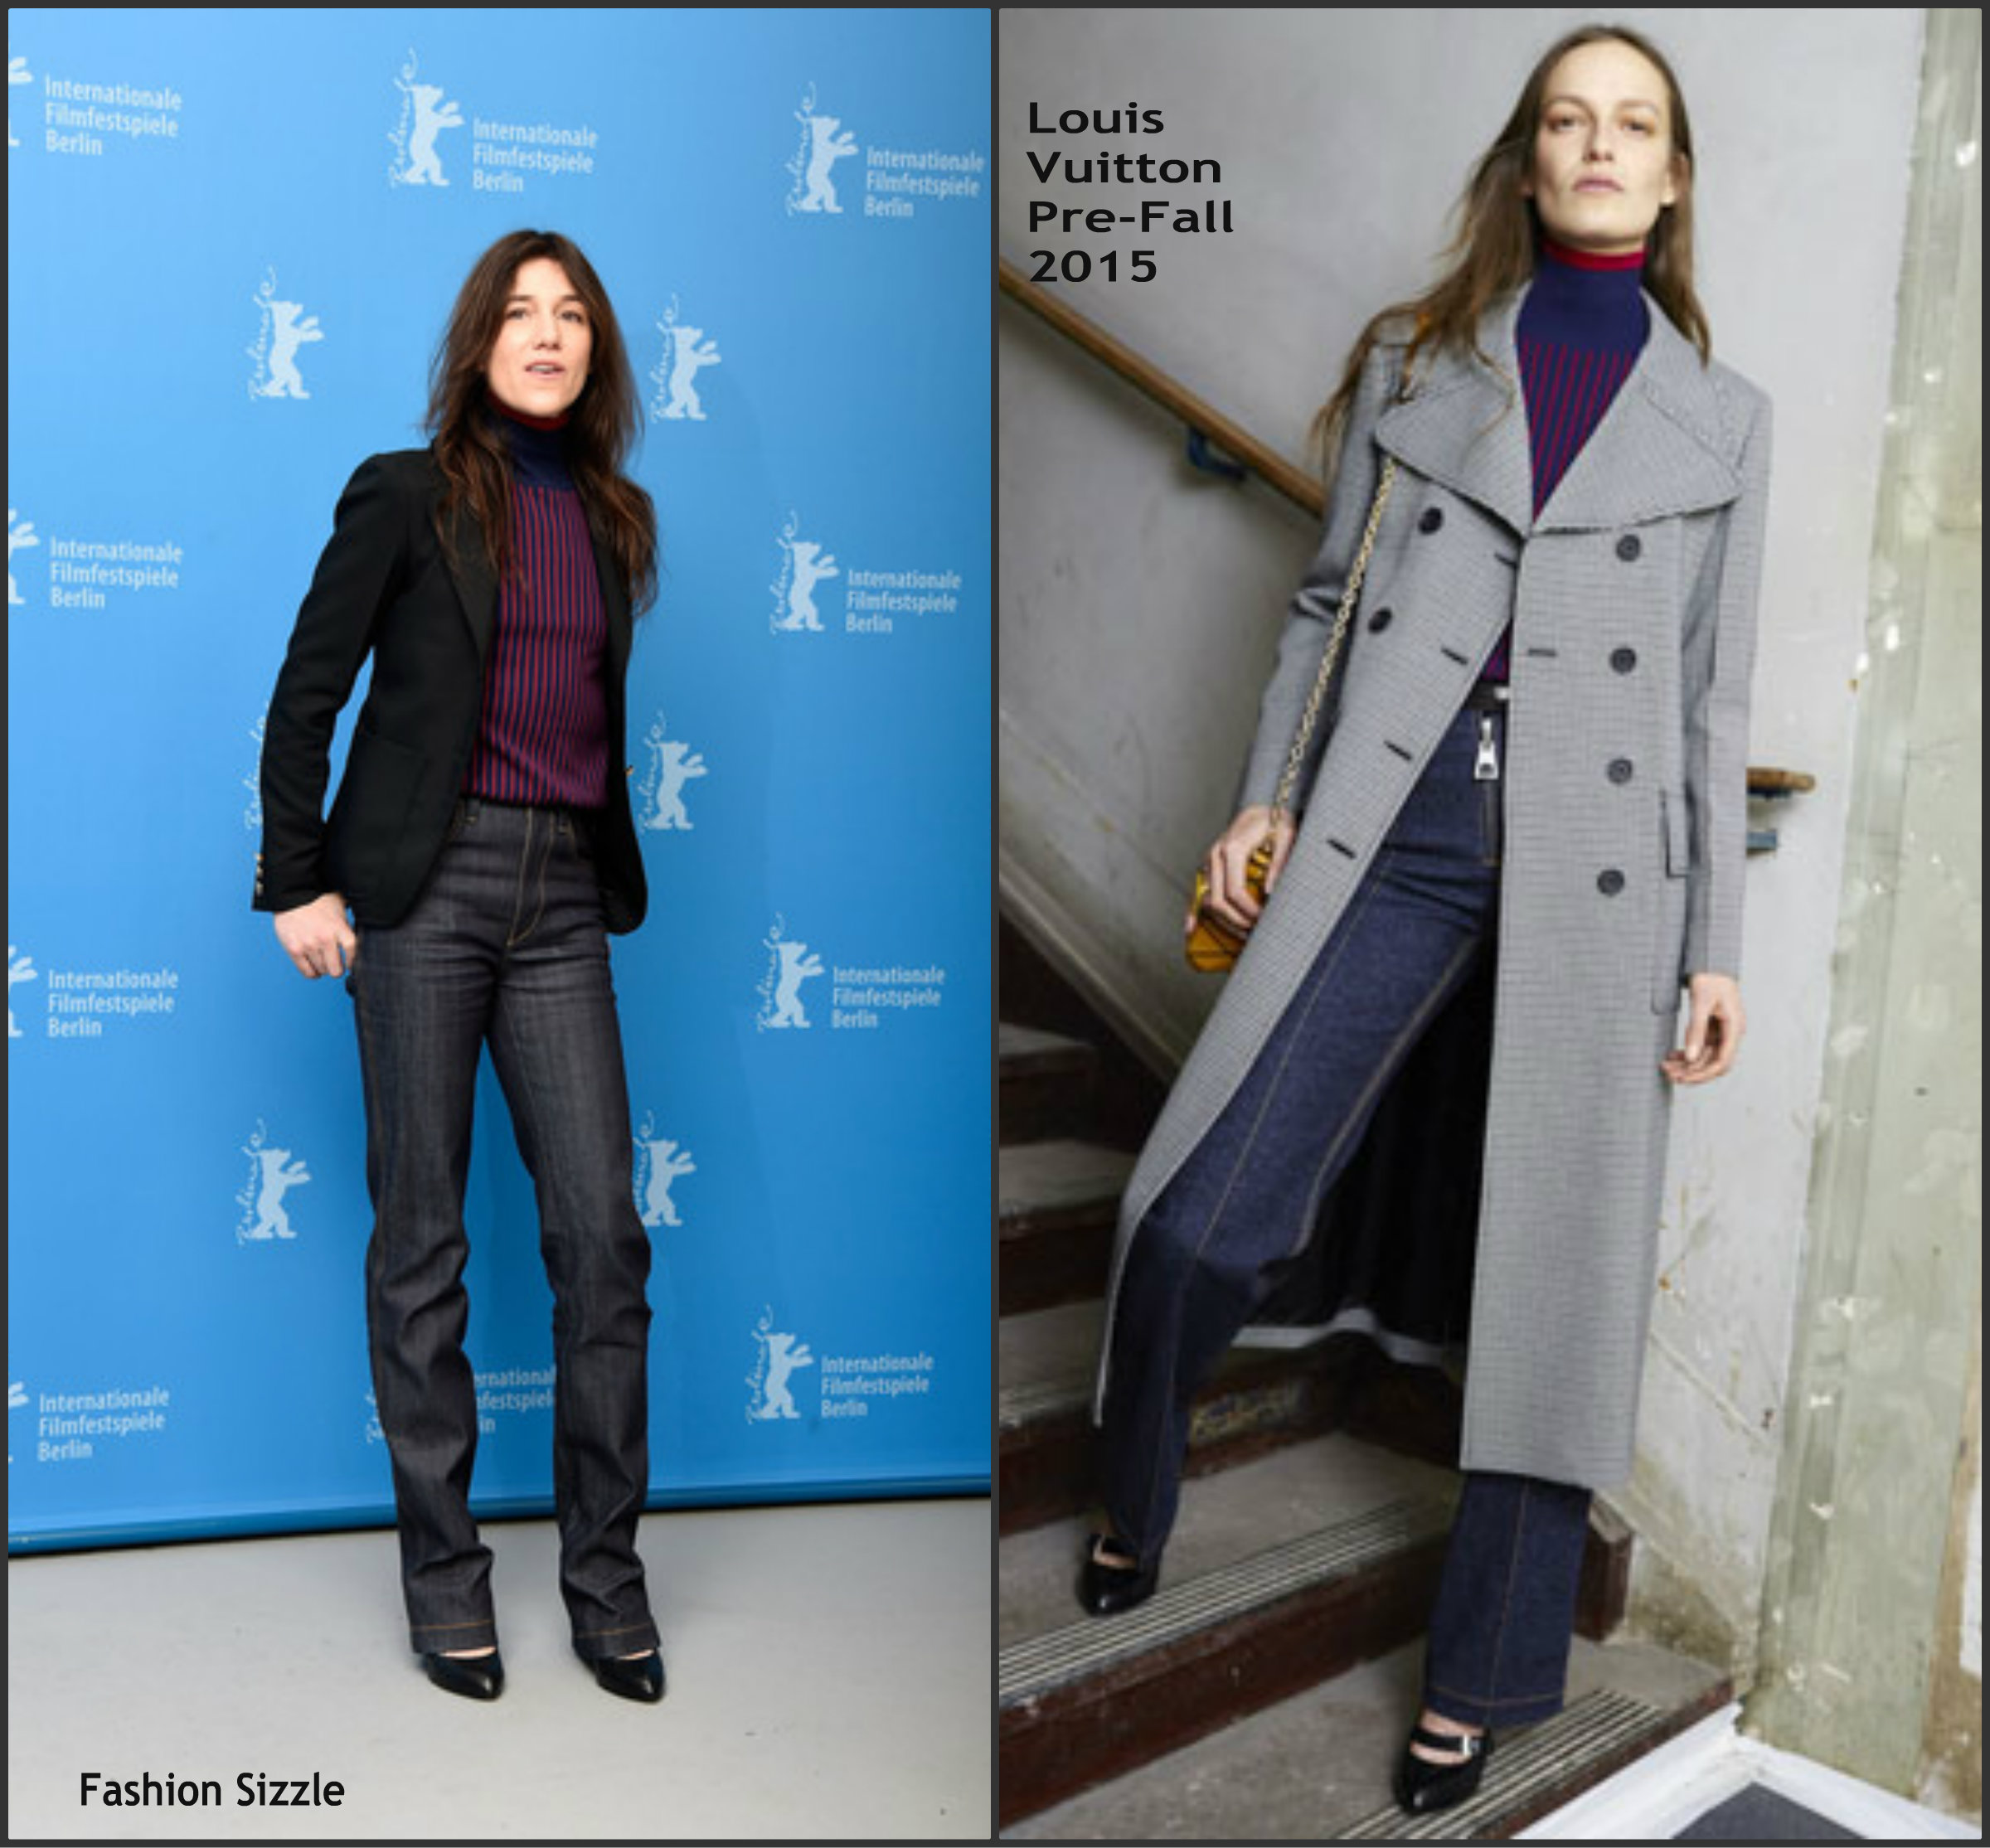 Chorlotte-Gainsbourg-in-Louis-Vuitton-Everything-wil-be-fine-Berlin-Photocall